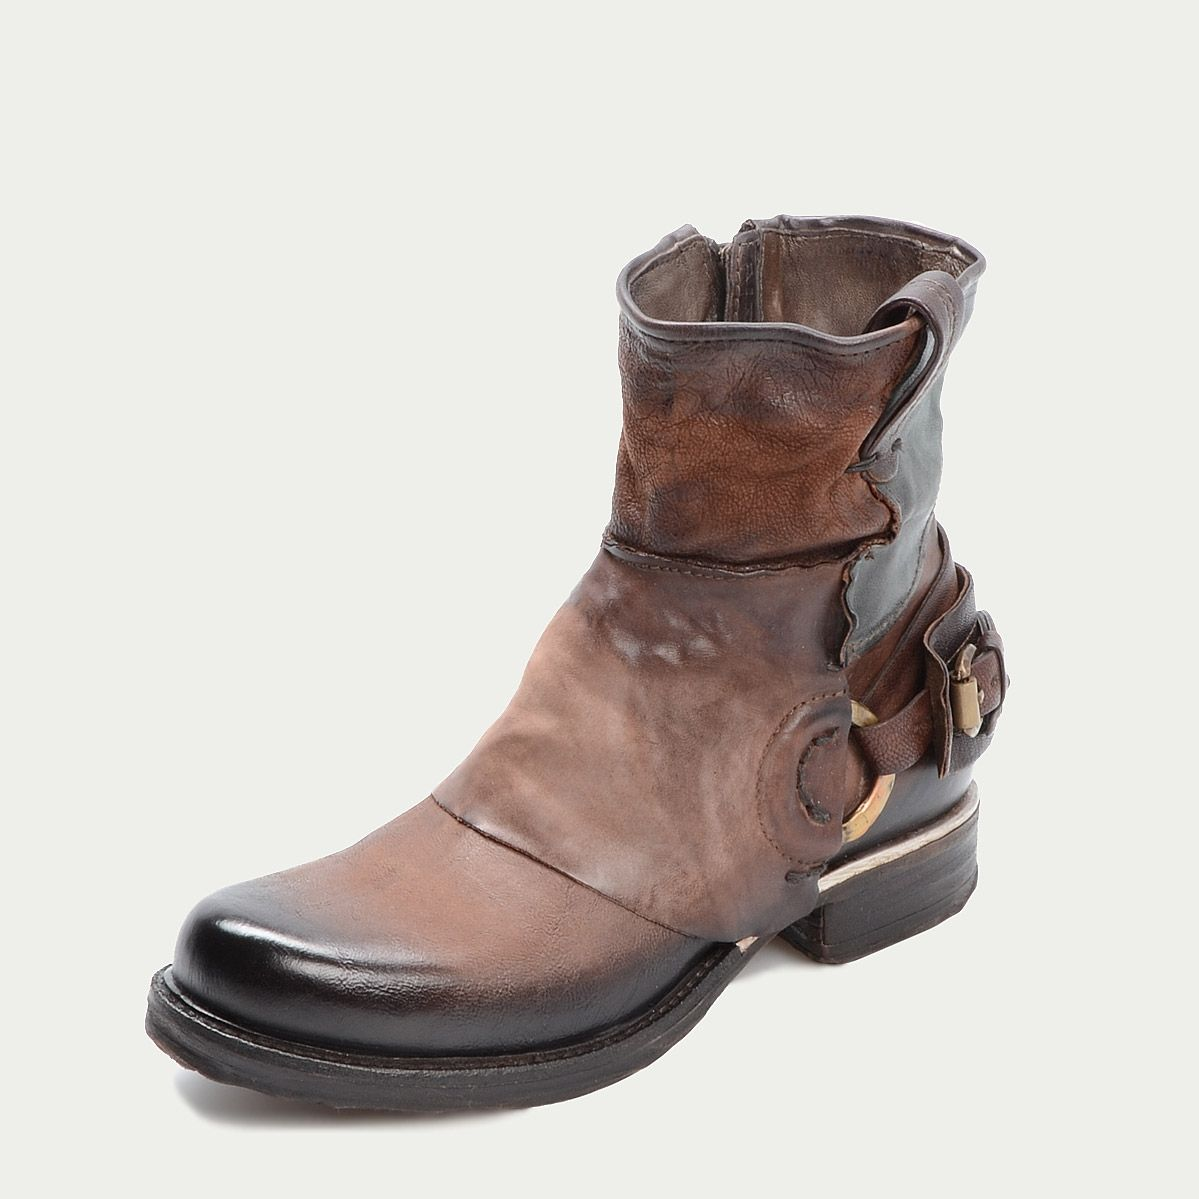 AirStep Boots Patchwork look meets on cool biker boot